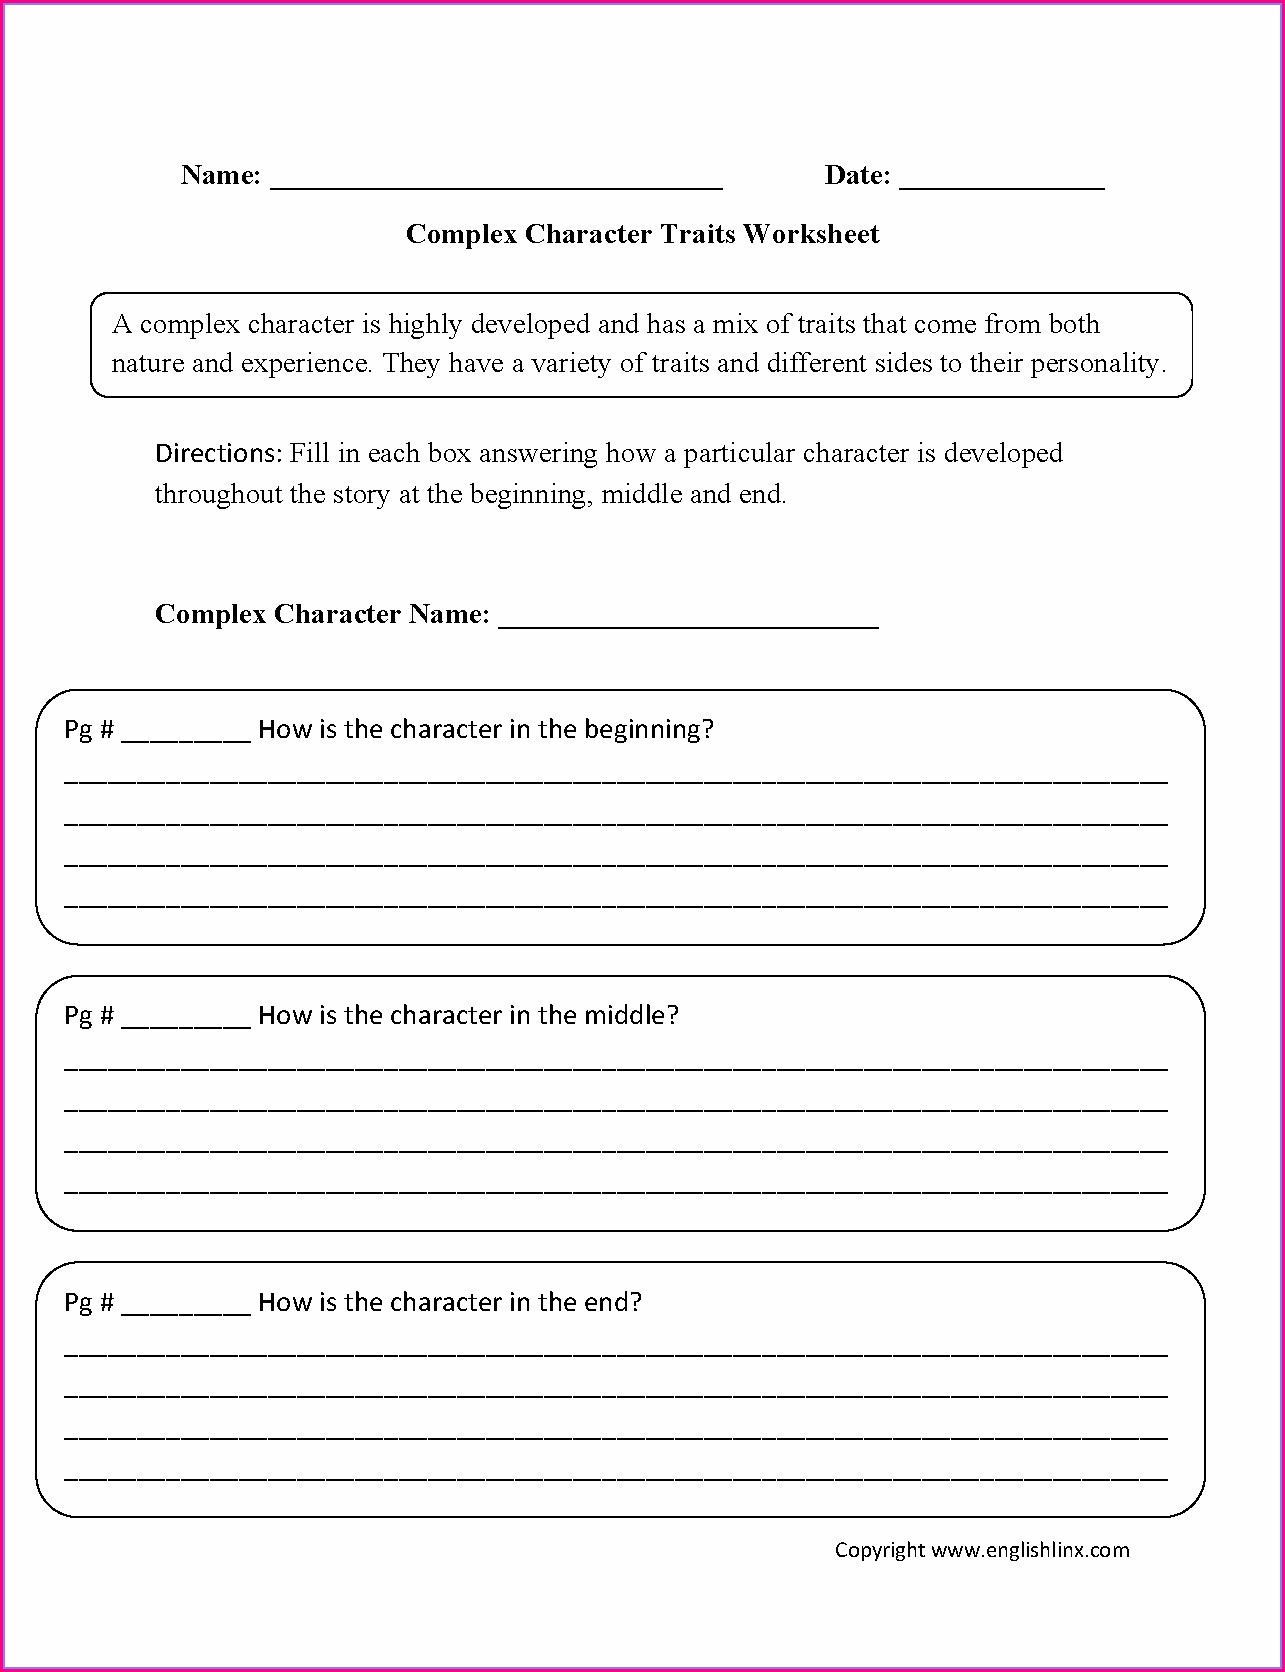 Character Traits Worksheet For 4th Grade